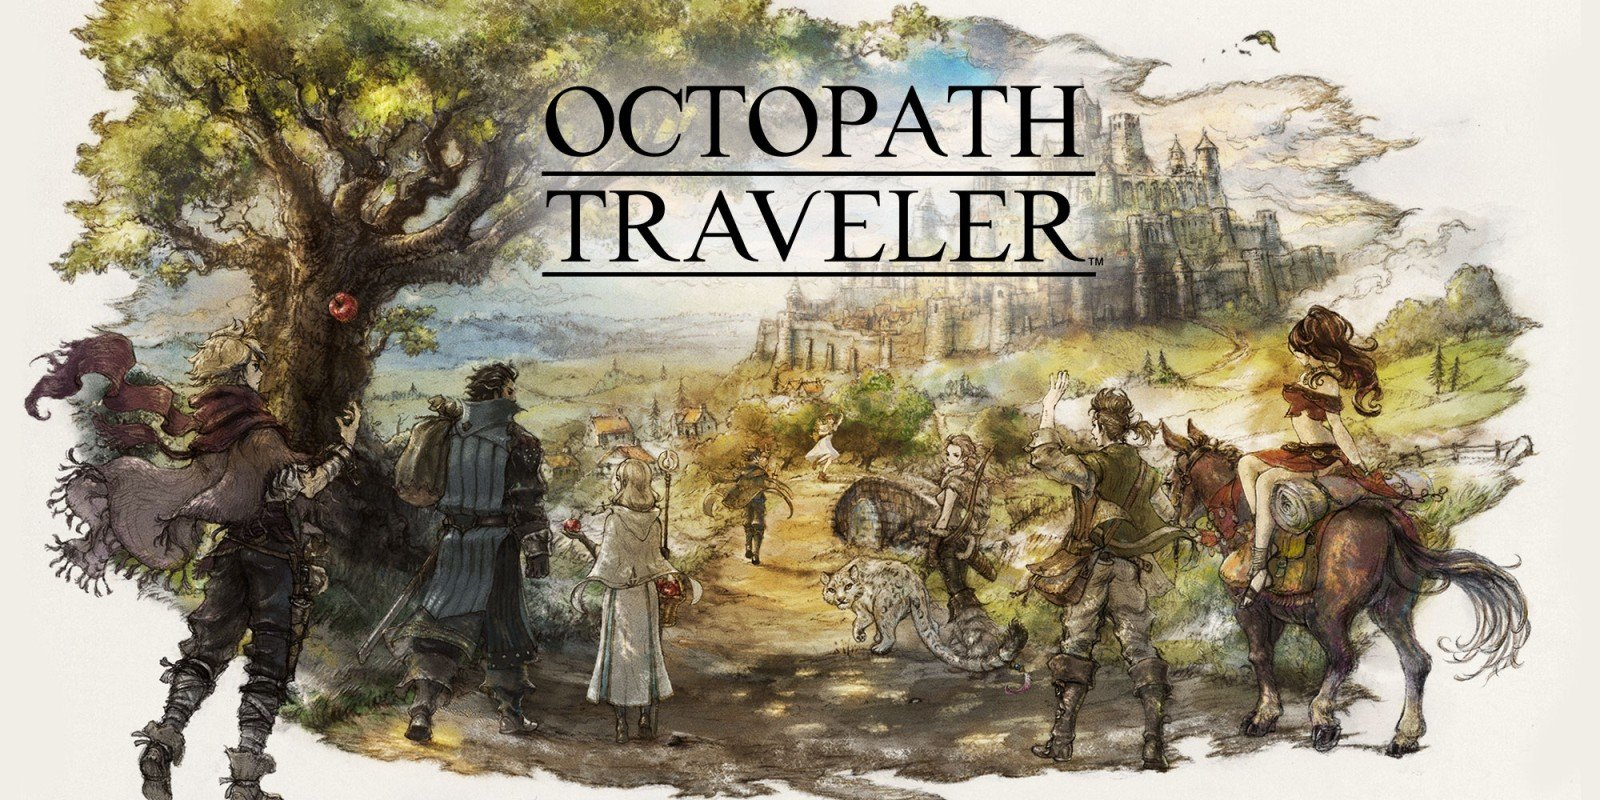 News - Octopath Traveler E3 trailer